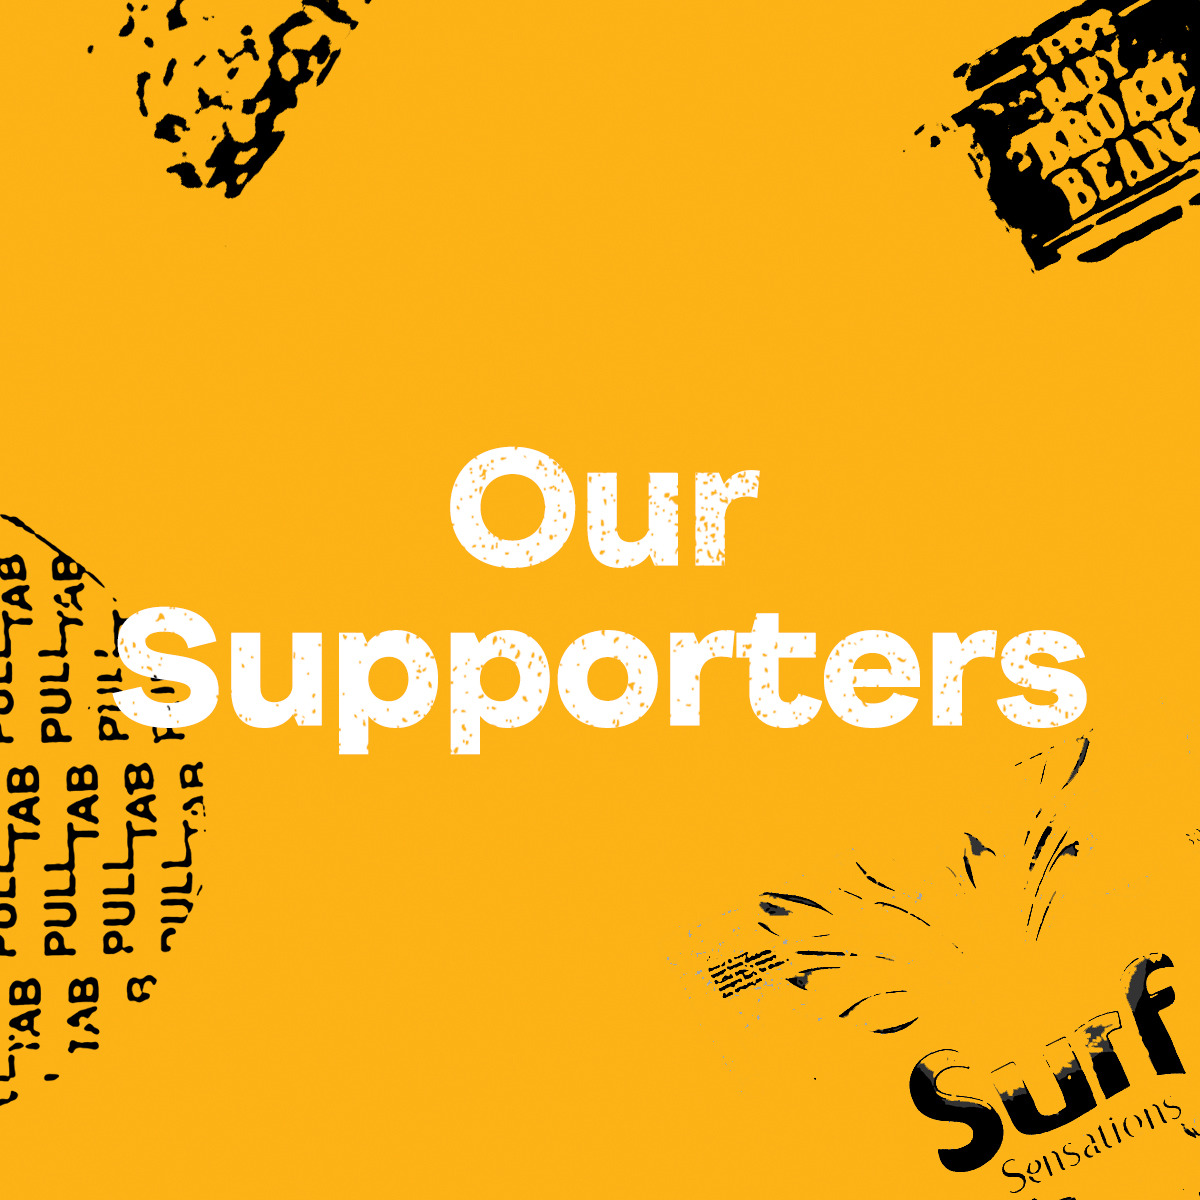 HUGE thank you to our supporters - Surfers Against SewageSurfers Against Sewage is a national marine conservation and campaigning charity that inspires, unites and empowers communities to take action to protect oceans, beaches, waves and wildlife. Surfers Against Sewage has the support of thousands of members across the UK. Together, they speak out for the protection of the coastal environment – your oceans, waves and beaches.Join a Plastic Free Community todayLeapLeap is an eco-design studio housing a hub of talented creatives and associates who use their specialised skills in design, branding and web as tools for positive change for people, planet and profit. As well as changing the world through design, Leap takes pride in a carbon-neutral hosting service created with care to green up the web one website at a time.Find out more about Leap